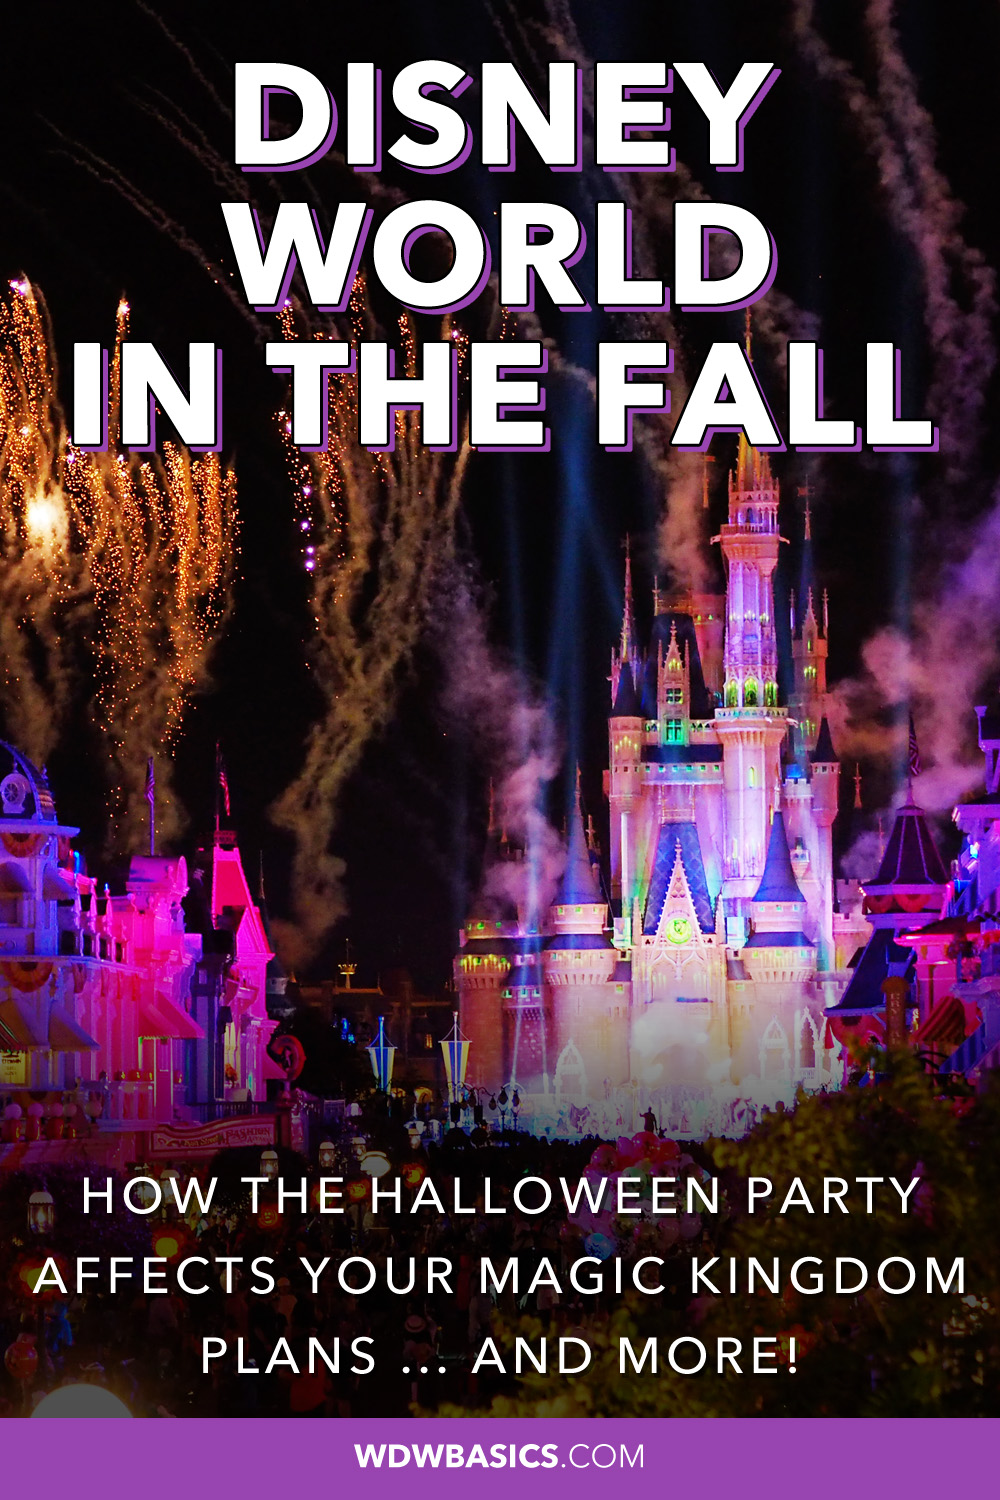 Disney World in the Fall